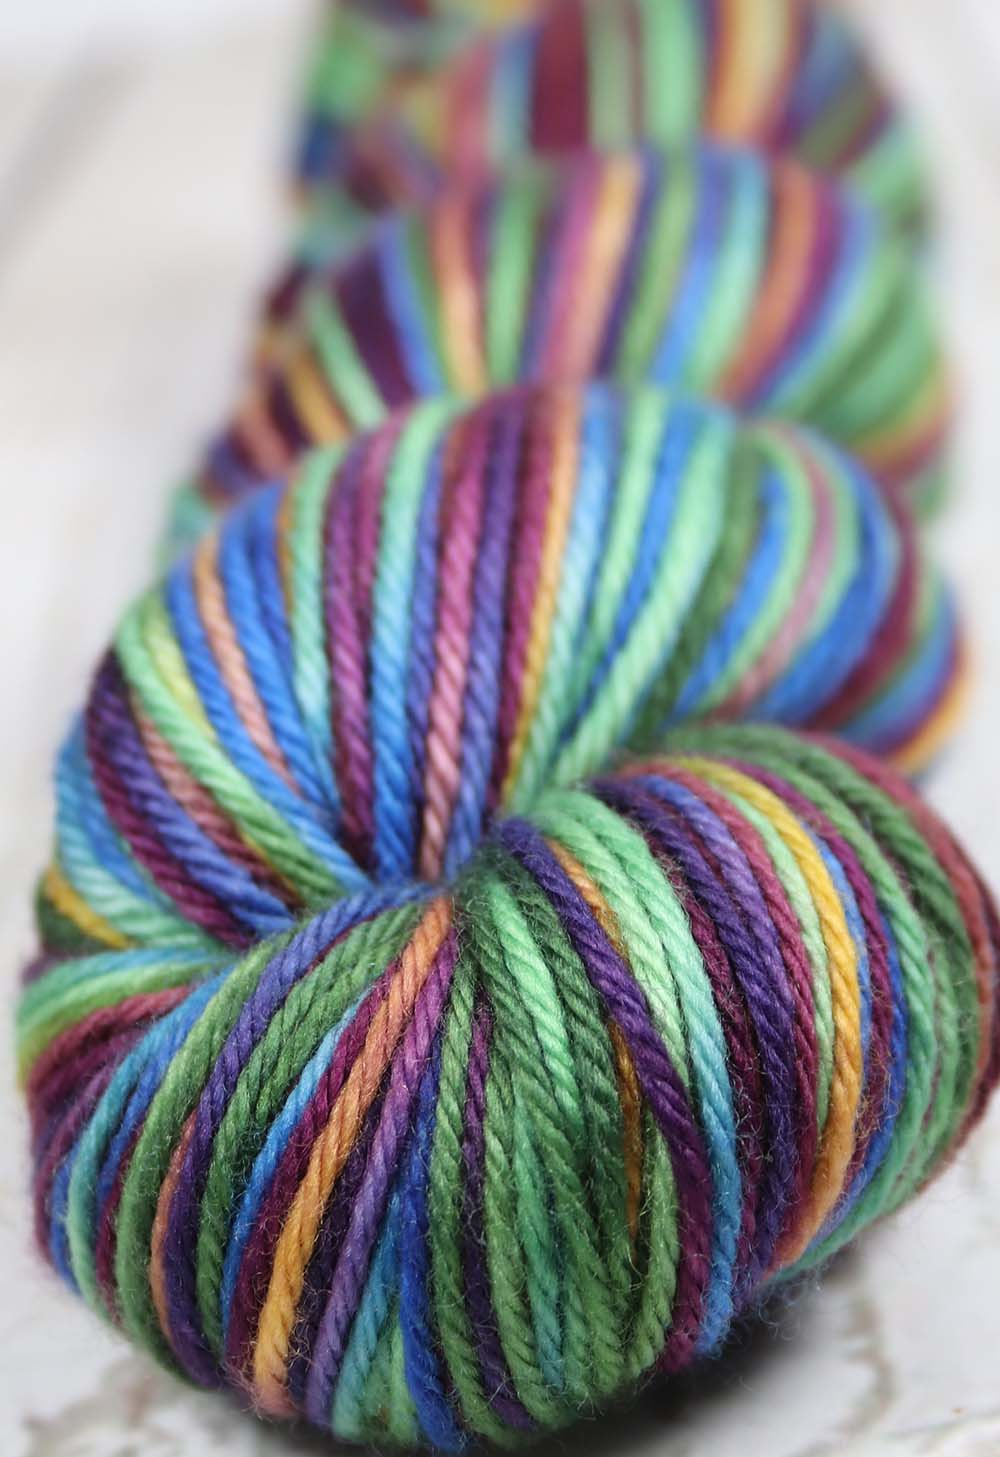 MOODY RAINBOW: Superwash Merino - Worsted Weight - Hand dyed Variegated Yarn